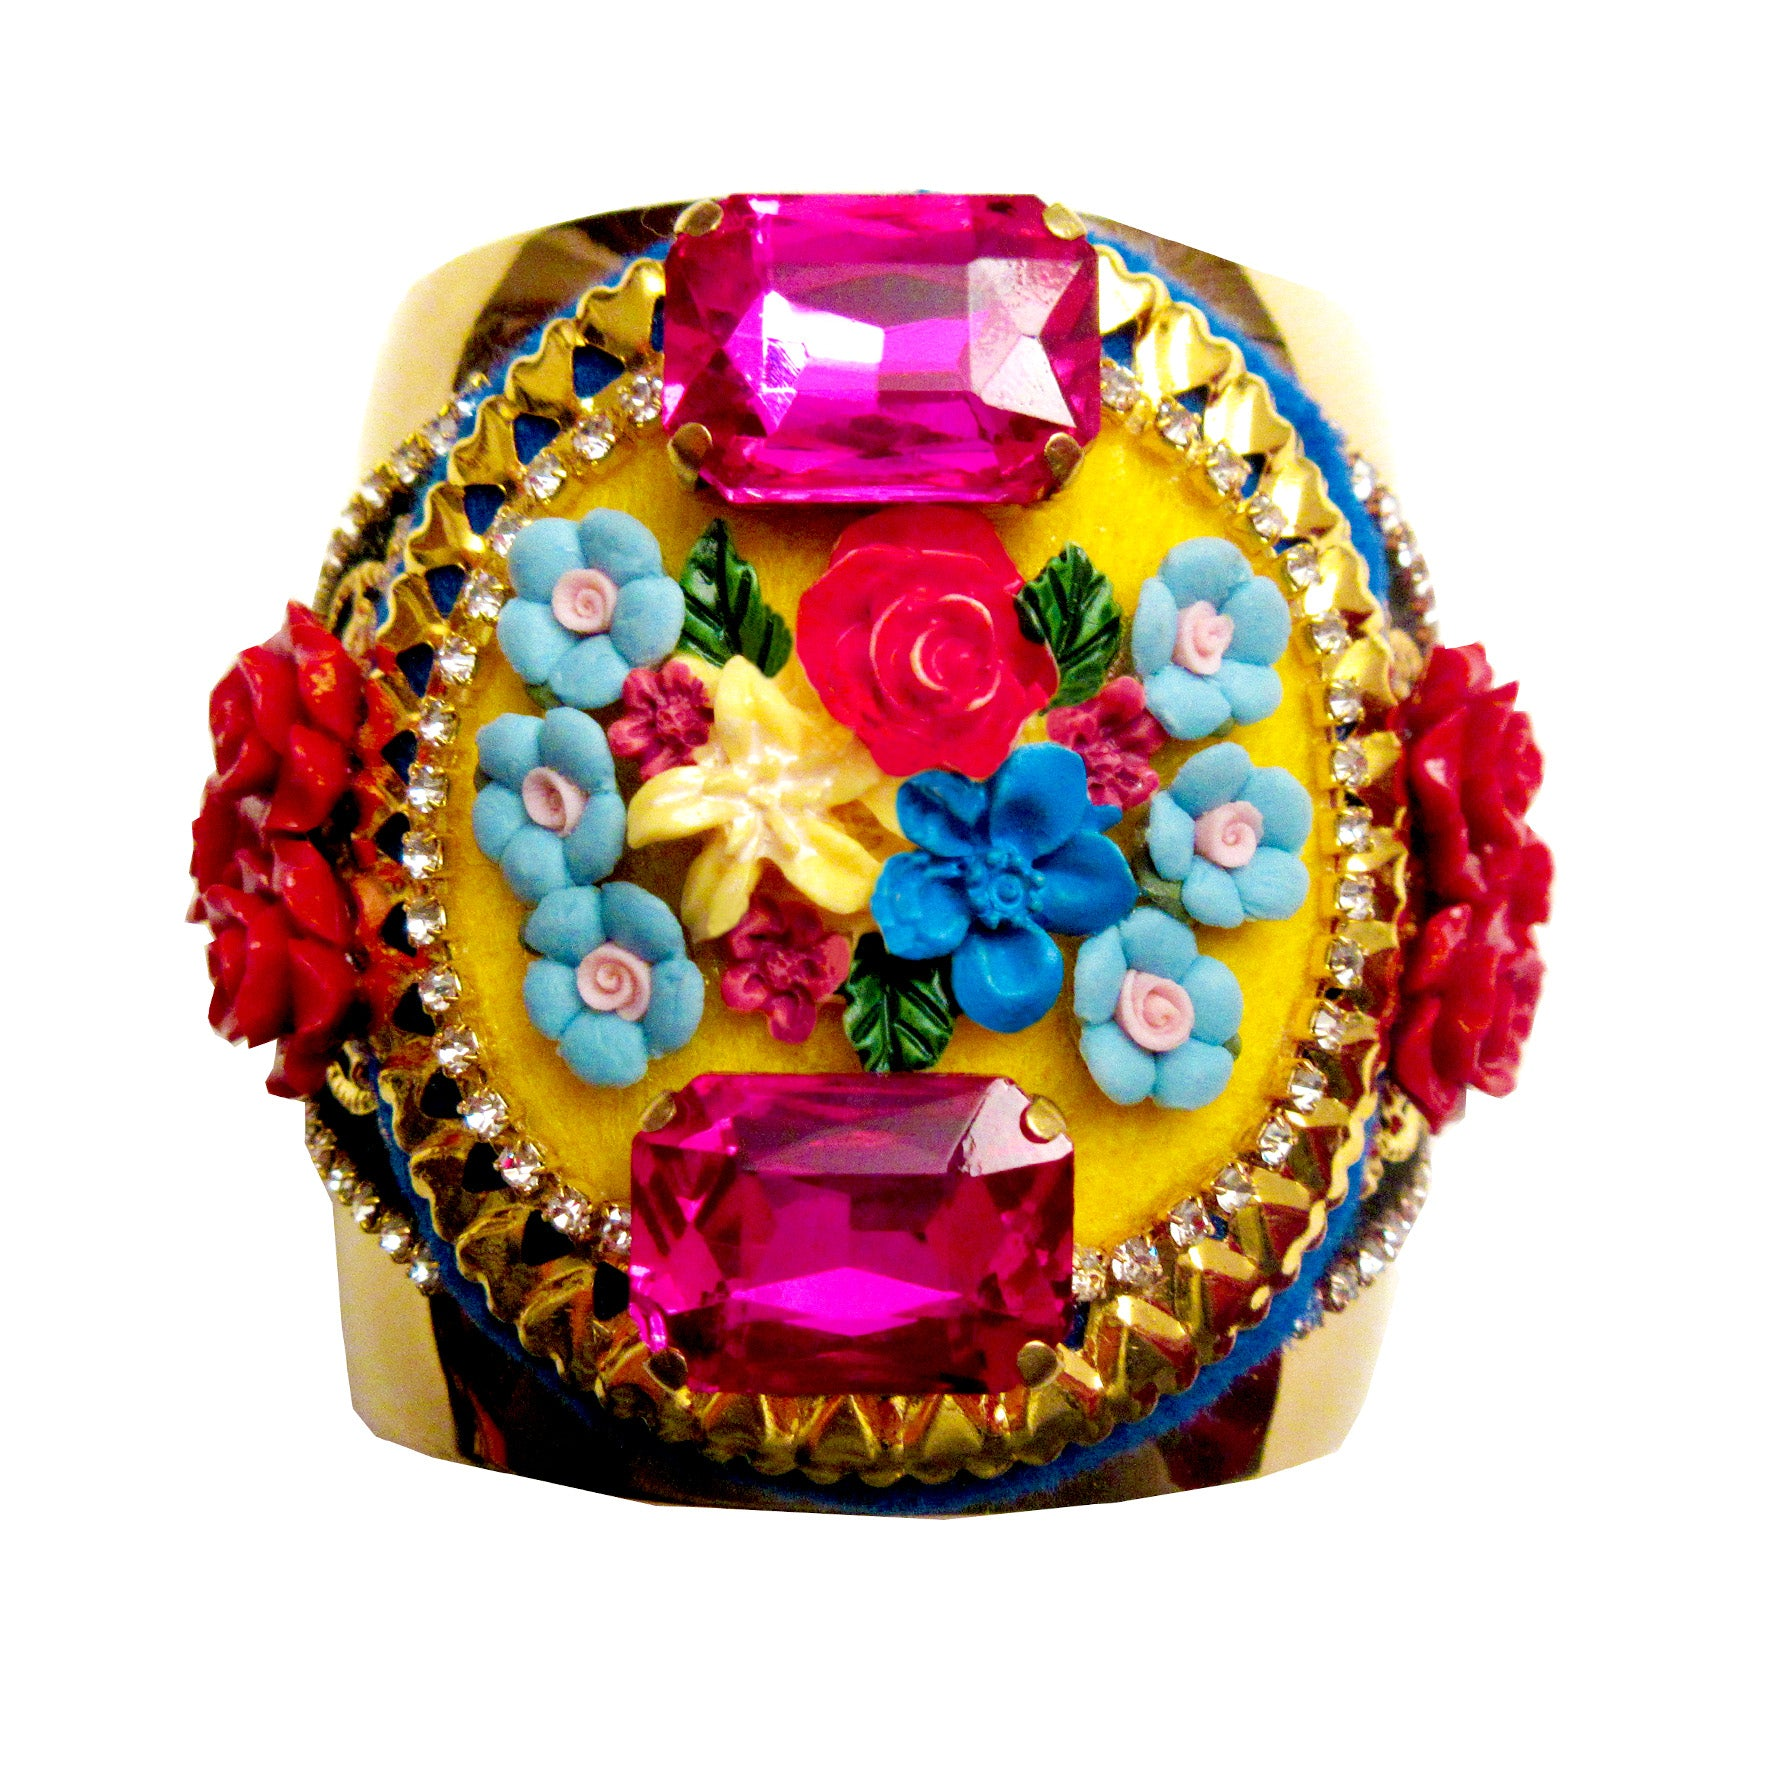 Mouchkine Jewelry handmade in france luxury floral bangle Bracelet